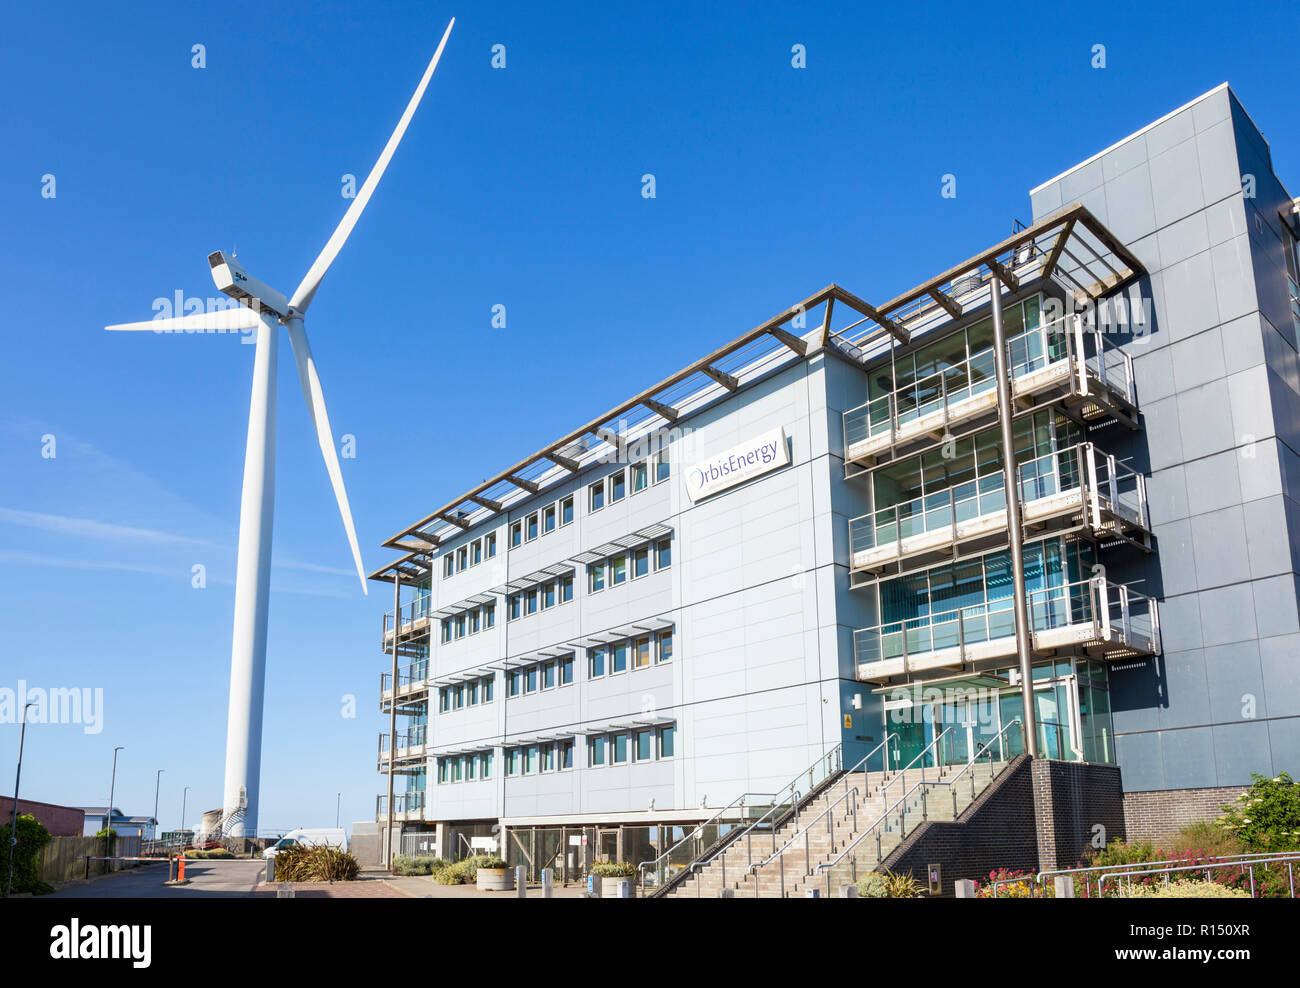 Orbis Energy an office hub for offshore renewable energy companies using offshore wind wave and tidal technologies Wilde street Lowestoft UK - Stock Image